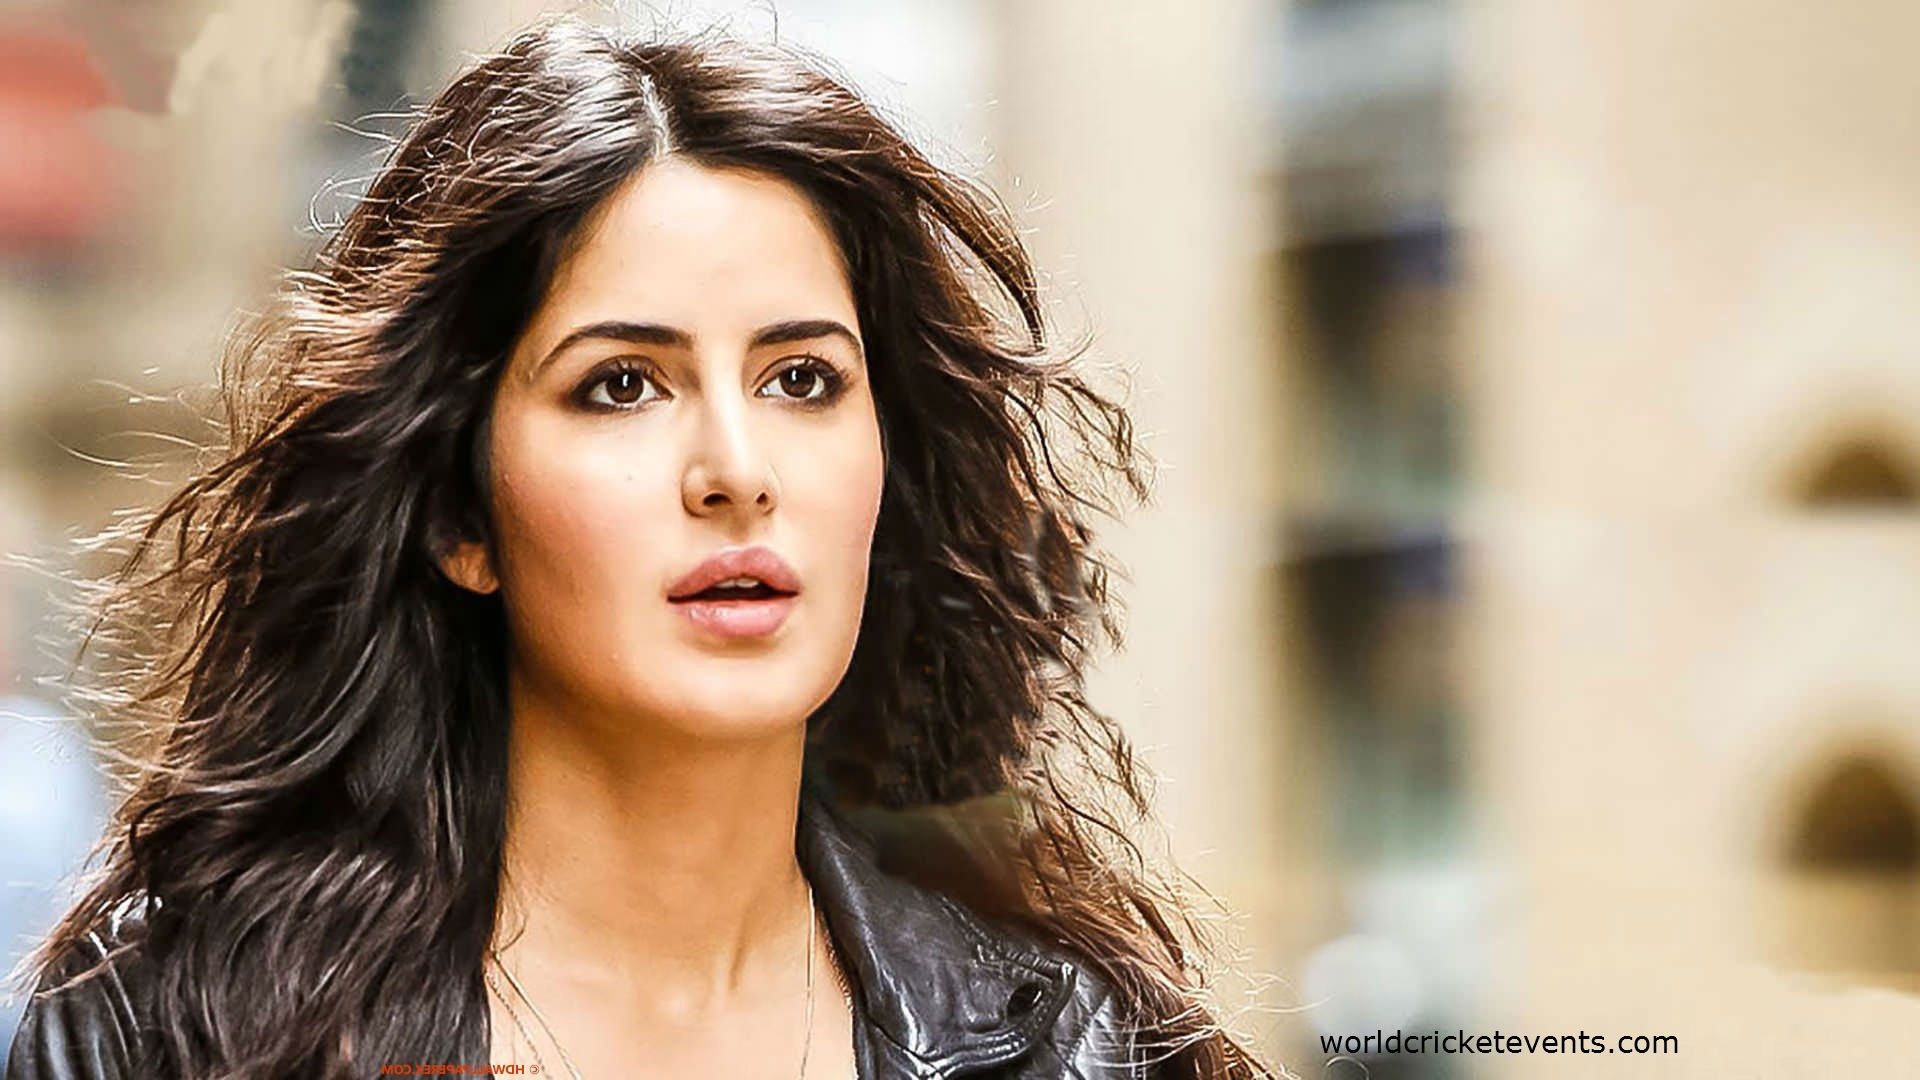 Pin About Katrina Kaif Wallpapers On Kate You Just Rockss